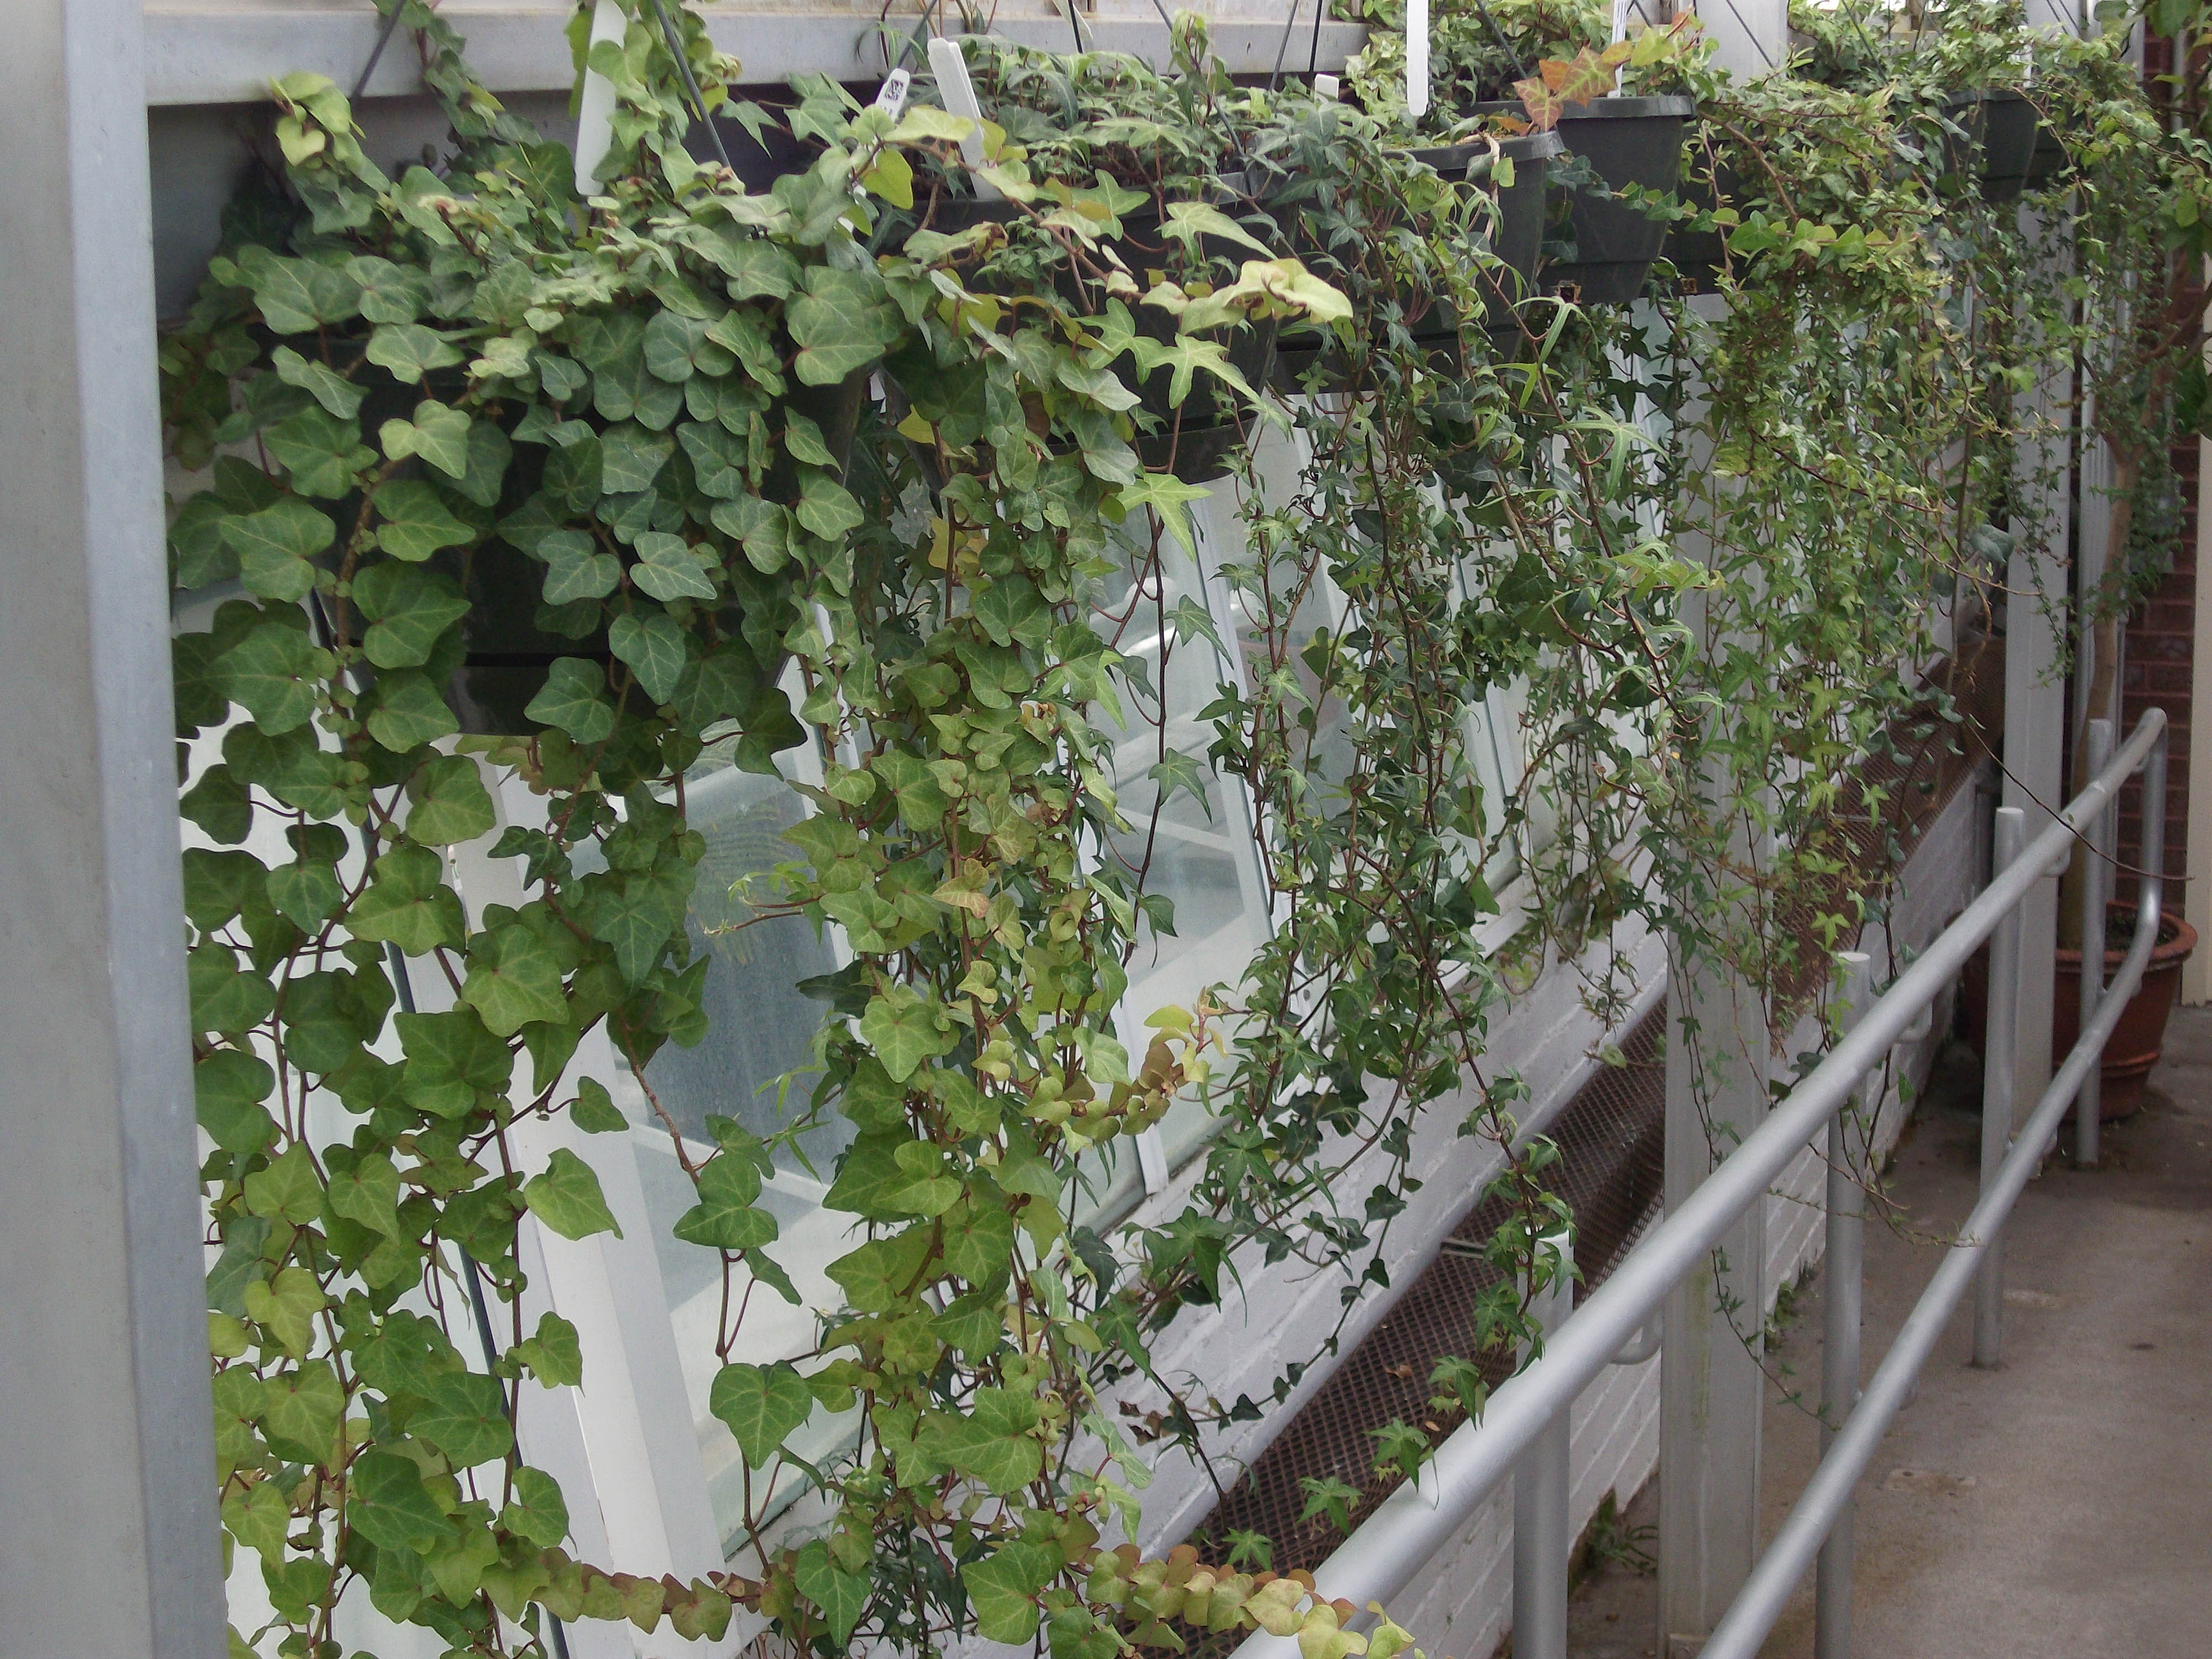 Hanging ivy plants in the greenhouse